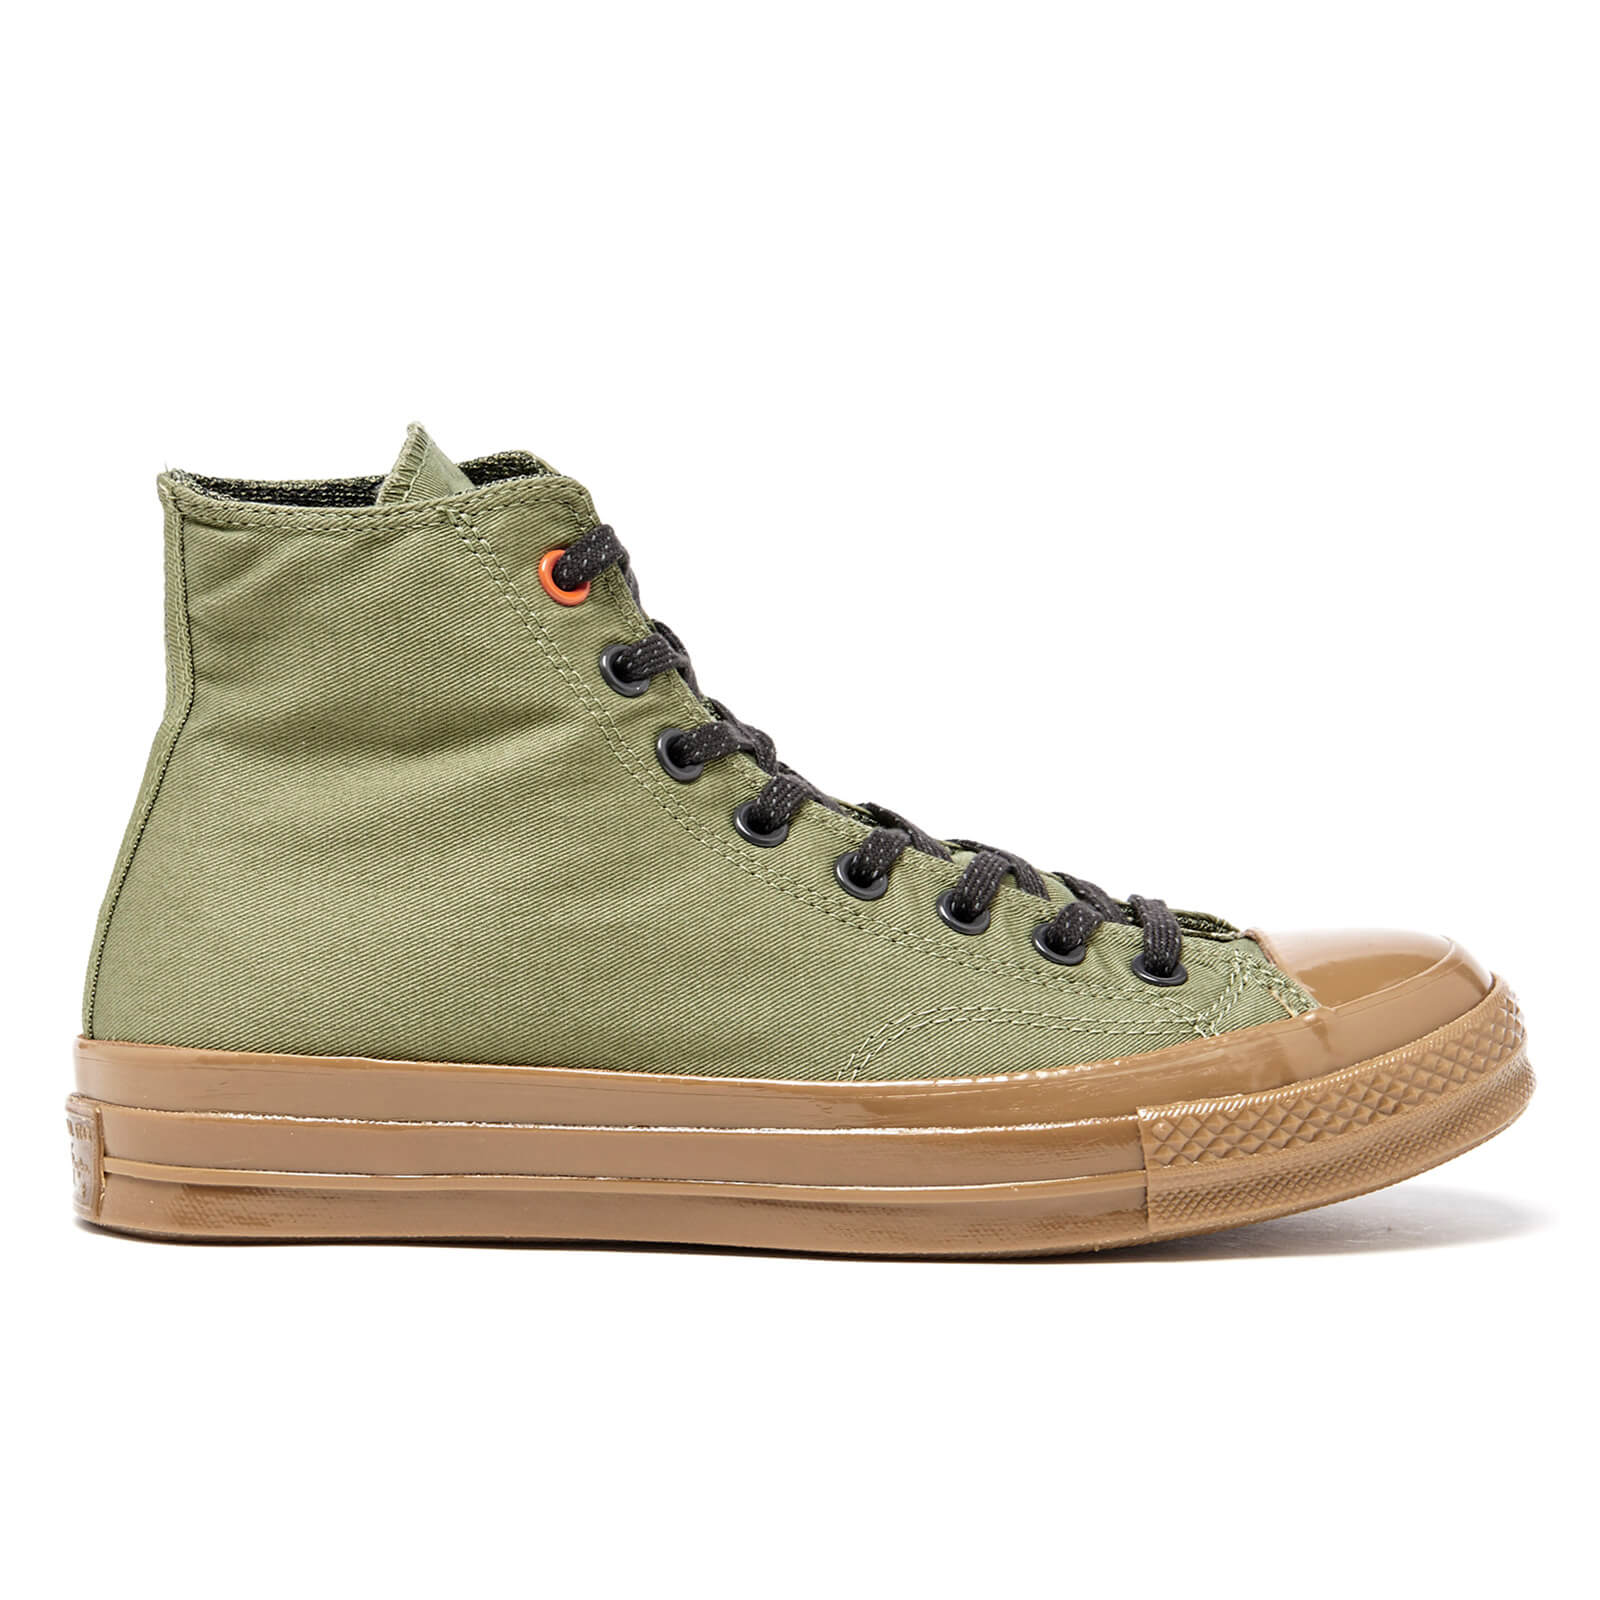 79ad5fdd92a1 Converse Men s Chuck Taylor All Star  70 Hi-Top Trainers - Fatigue Green Almost  Black Gum - Free UK Delivery over £50